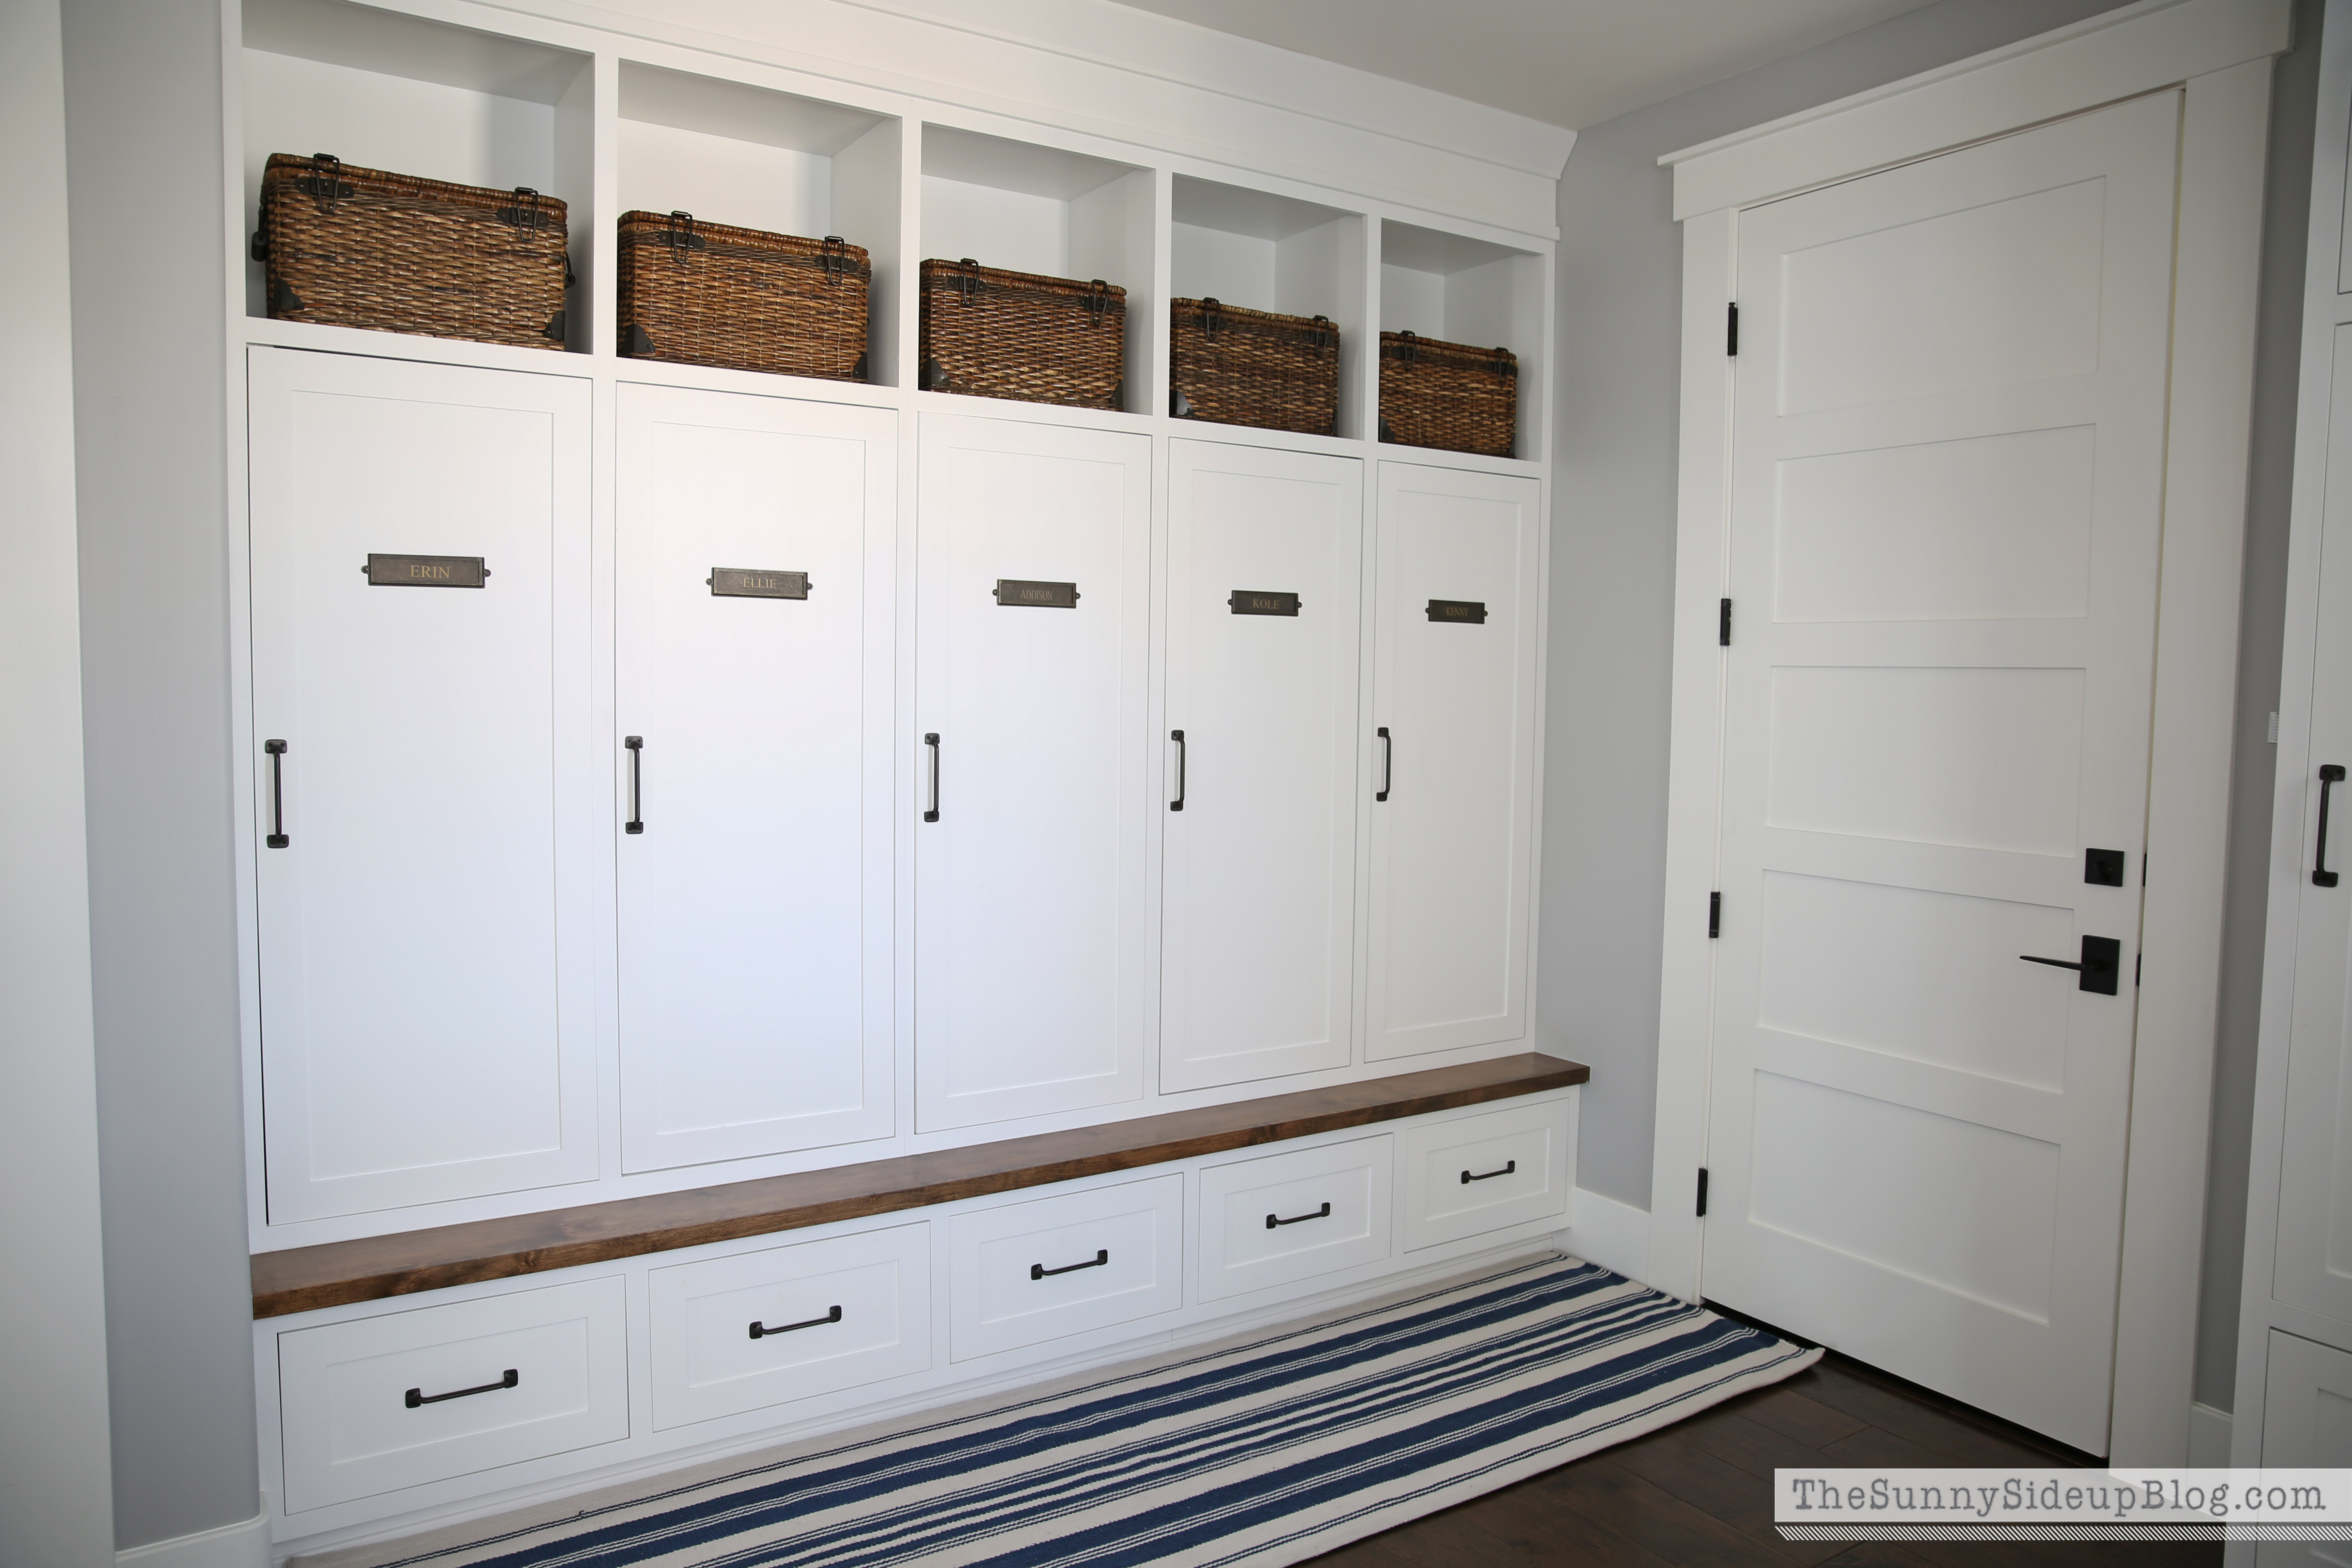 Home tour the sunny side up blog for Open lockers for mudroom